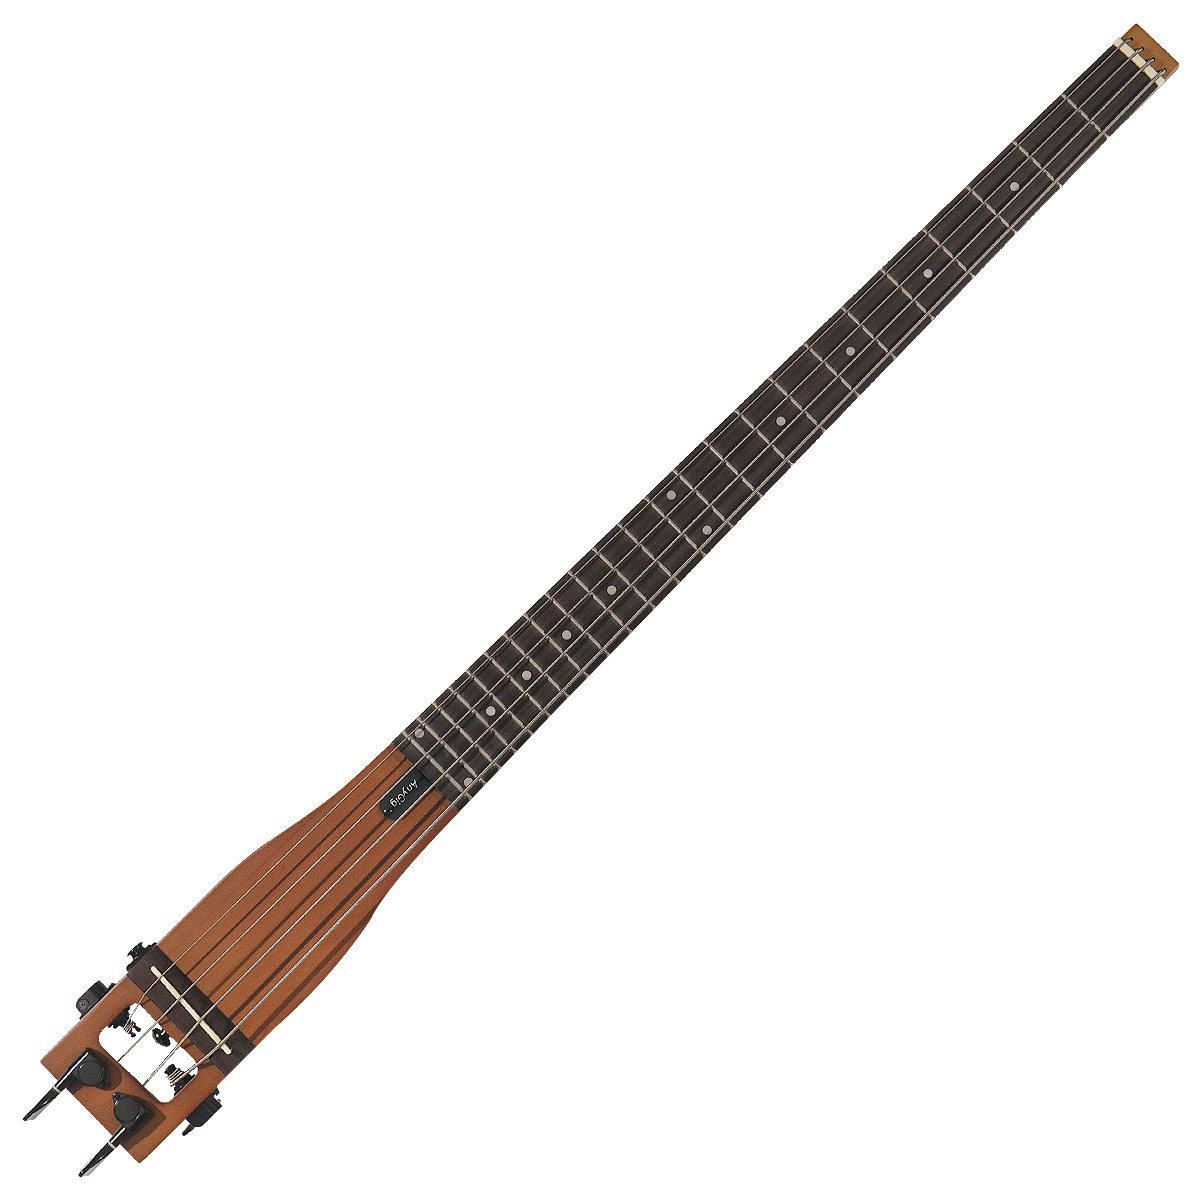 anygig agb 34 39 39 full scale length left hand 4 strings small bass guitar brown for sale online ebay. Black Bedroom Furniture Sets. Home Design Ideas